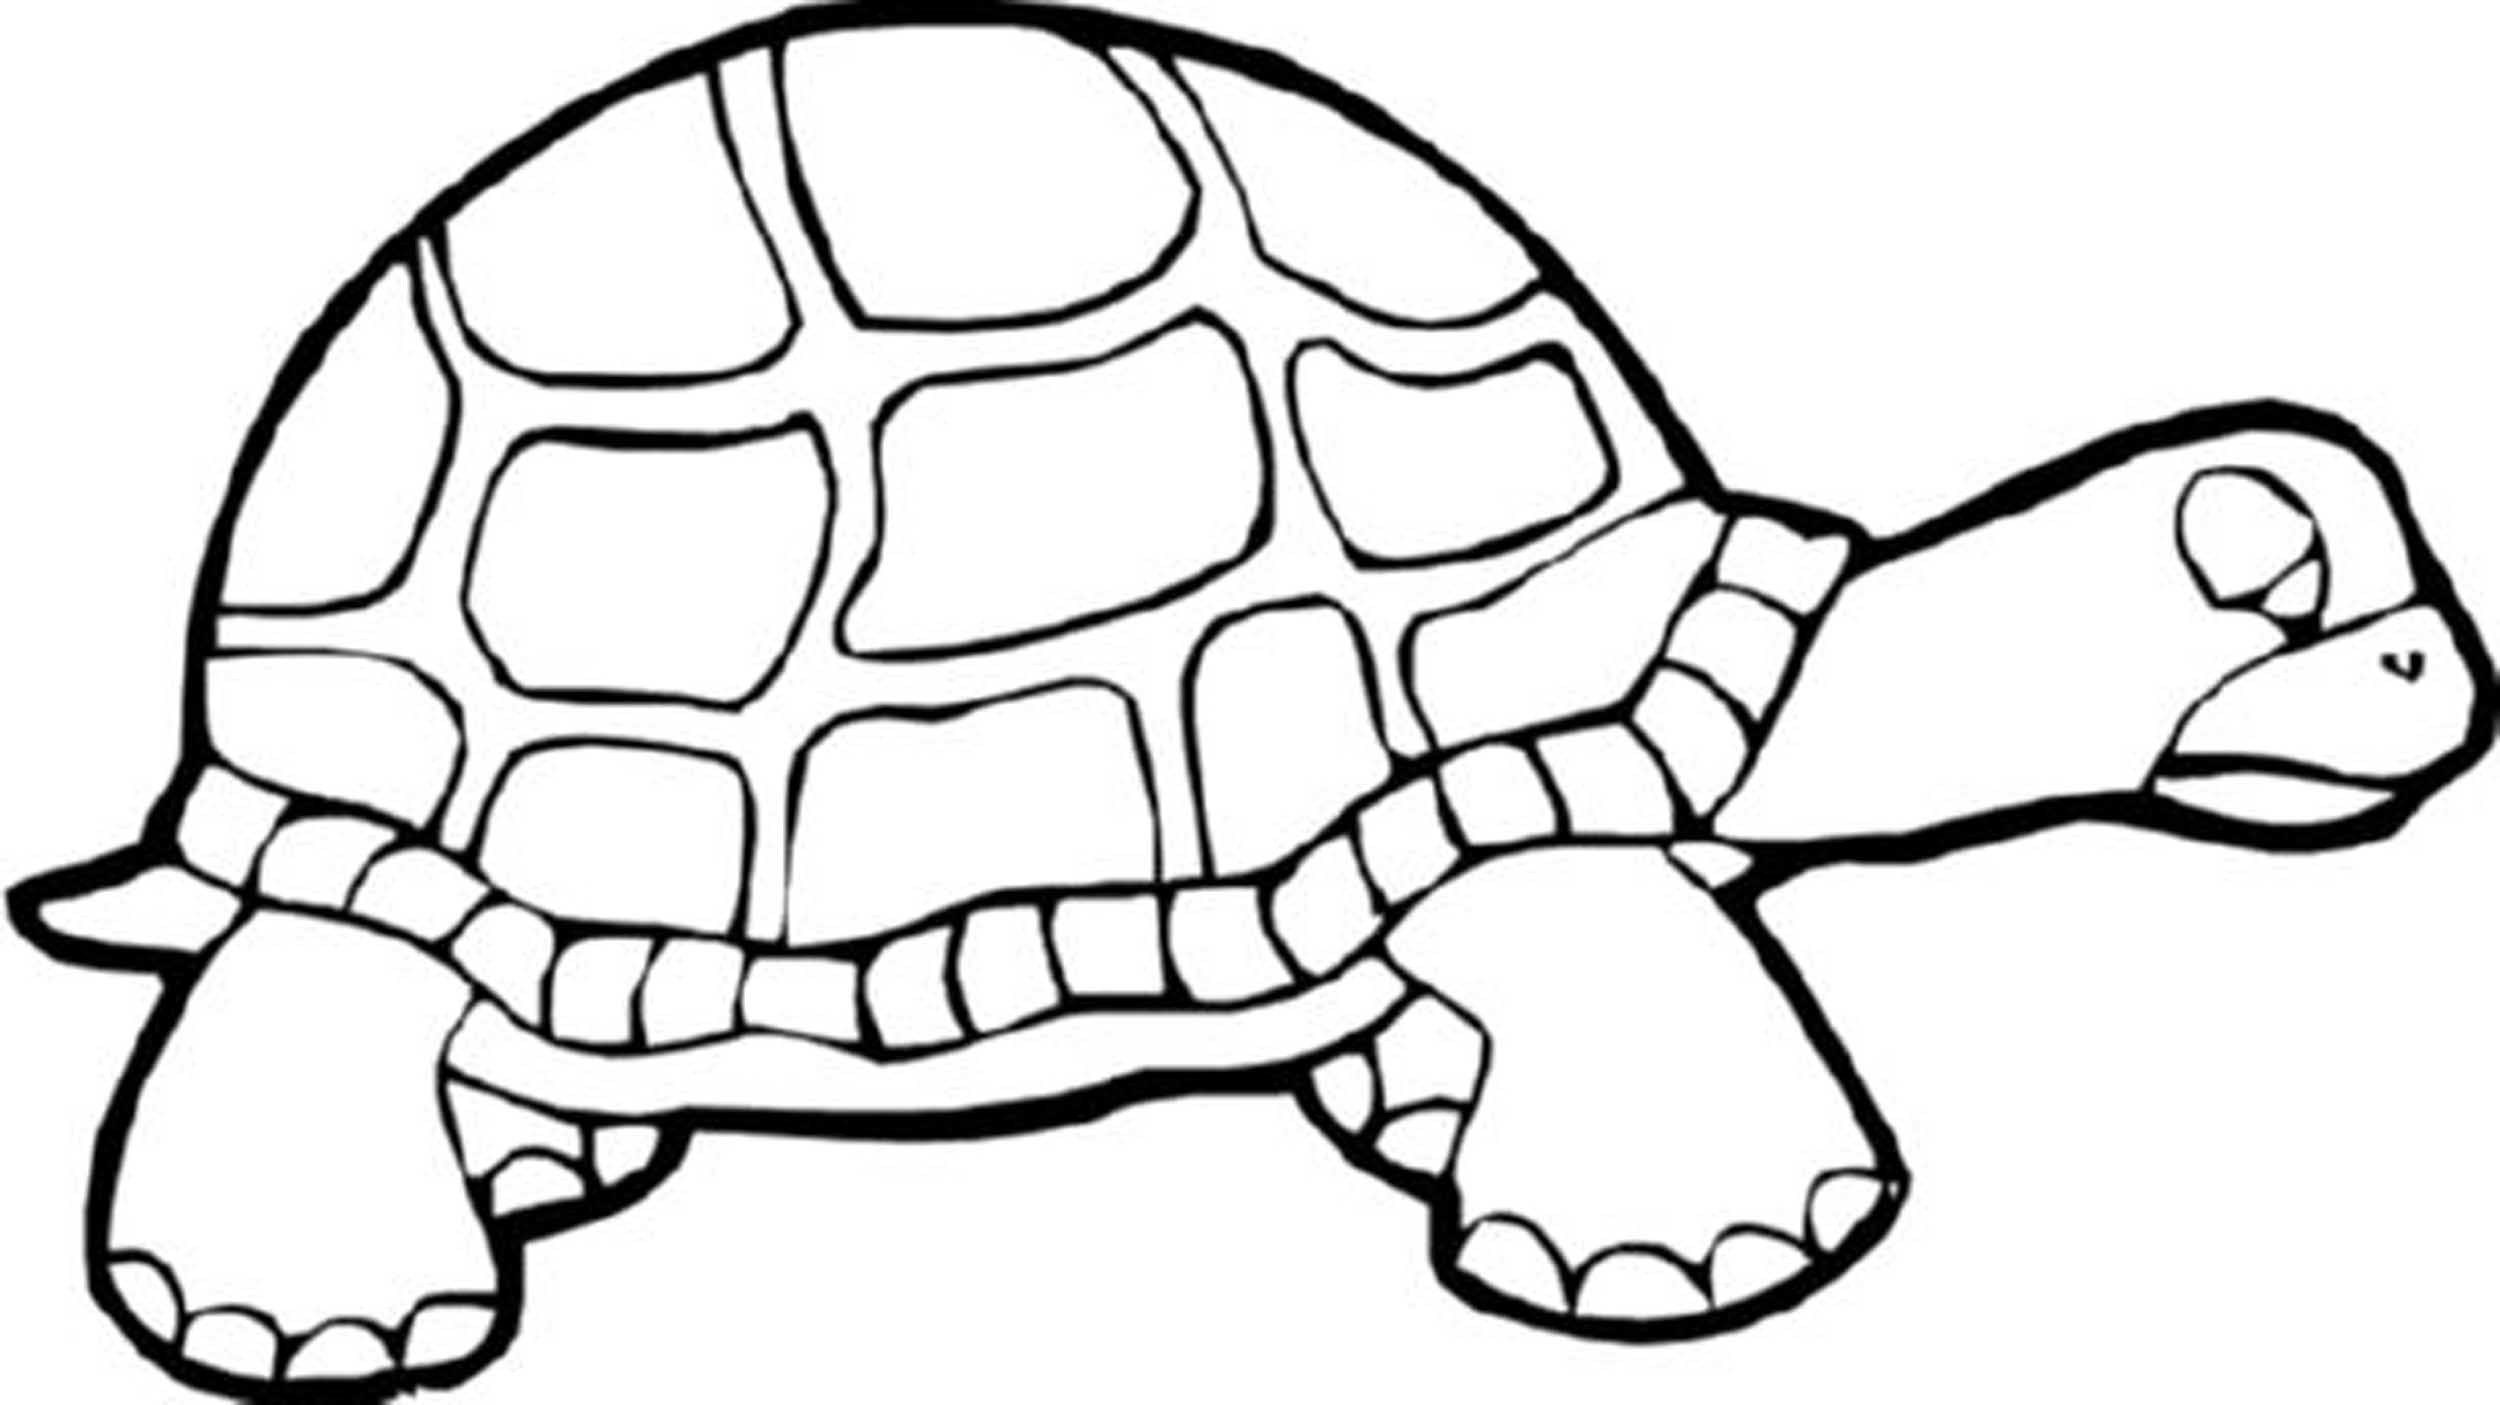 turtle pictures for coloring print download turtle coloring pages as the coloring turtle for pictures